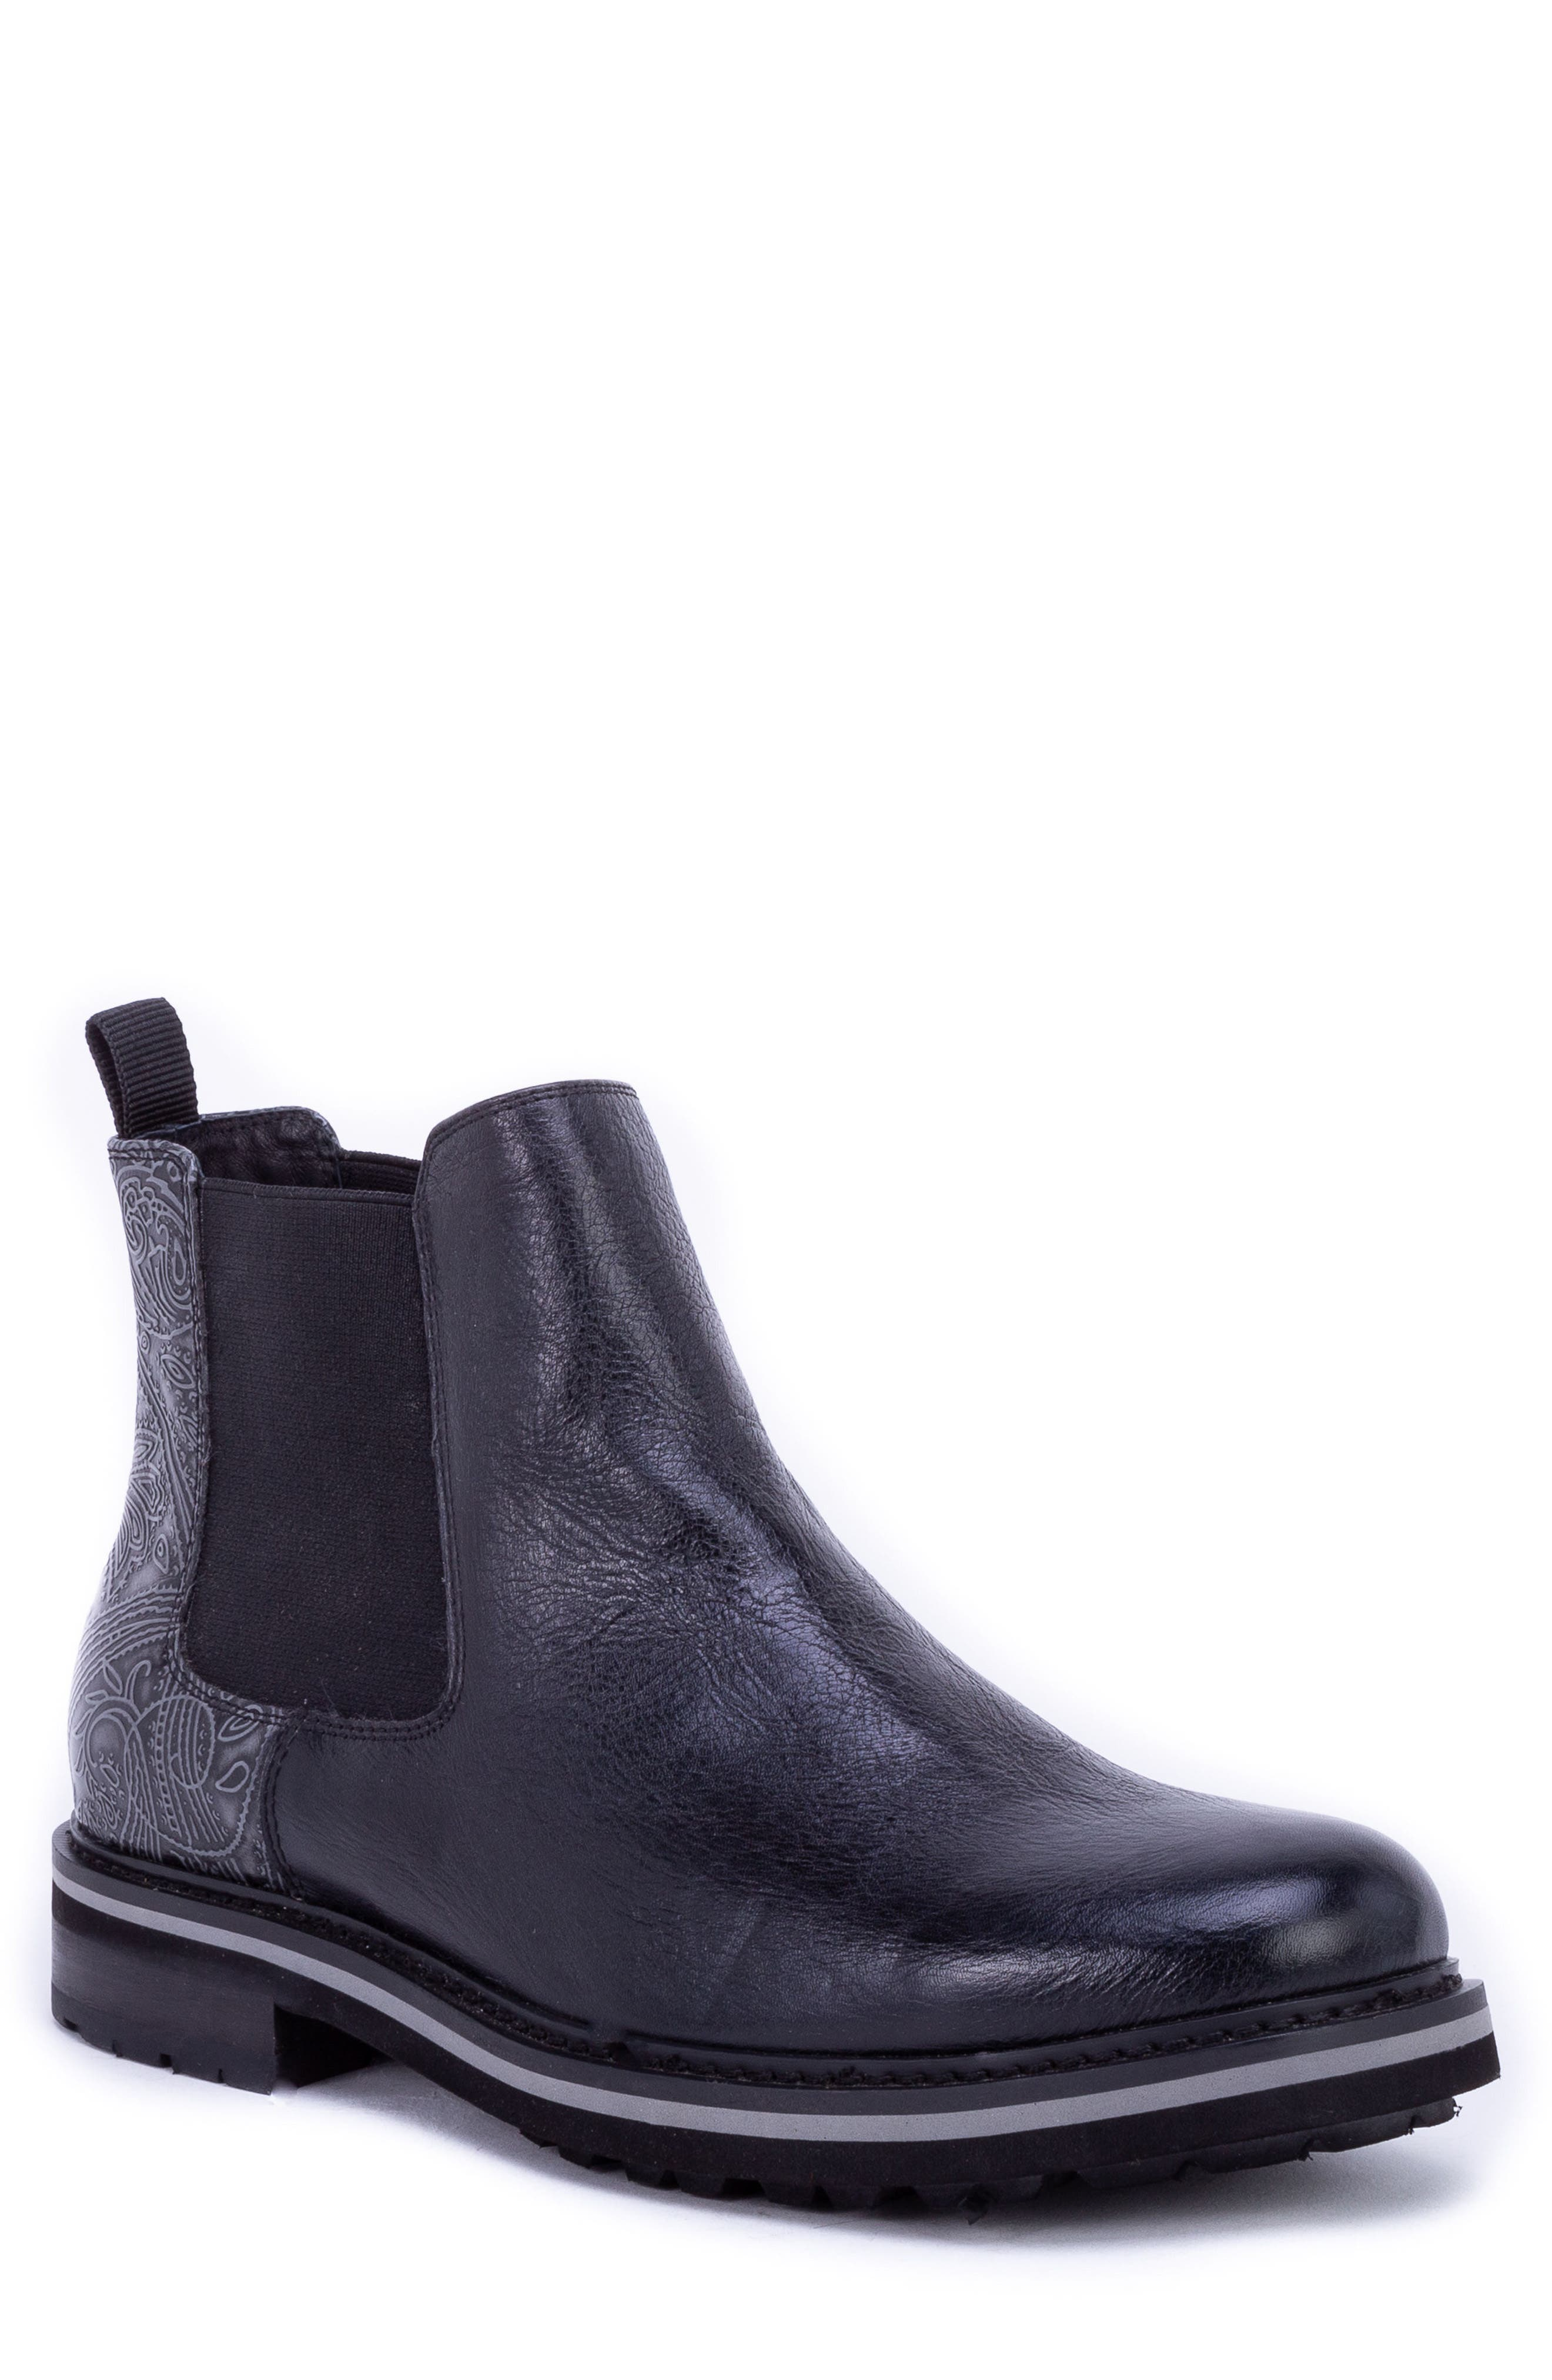 Yates Textured Chelsea Boot,                             Main thumbnail 1, color,                             BLACK LEATHER